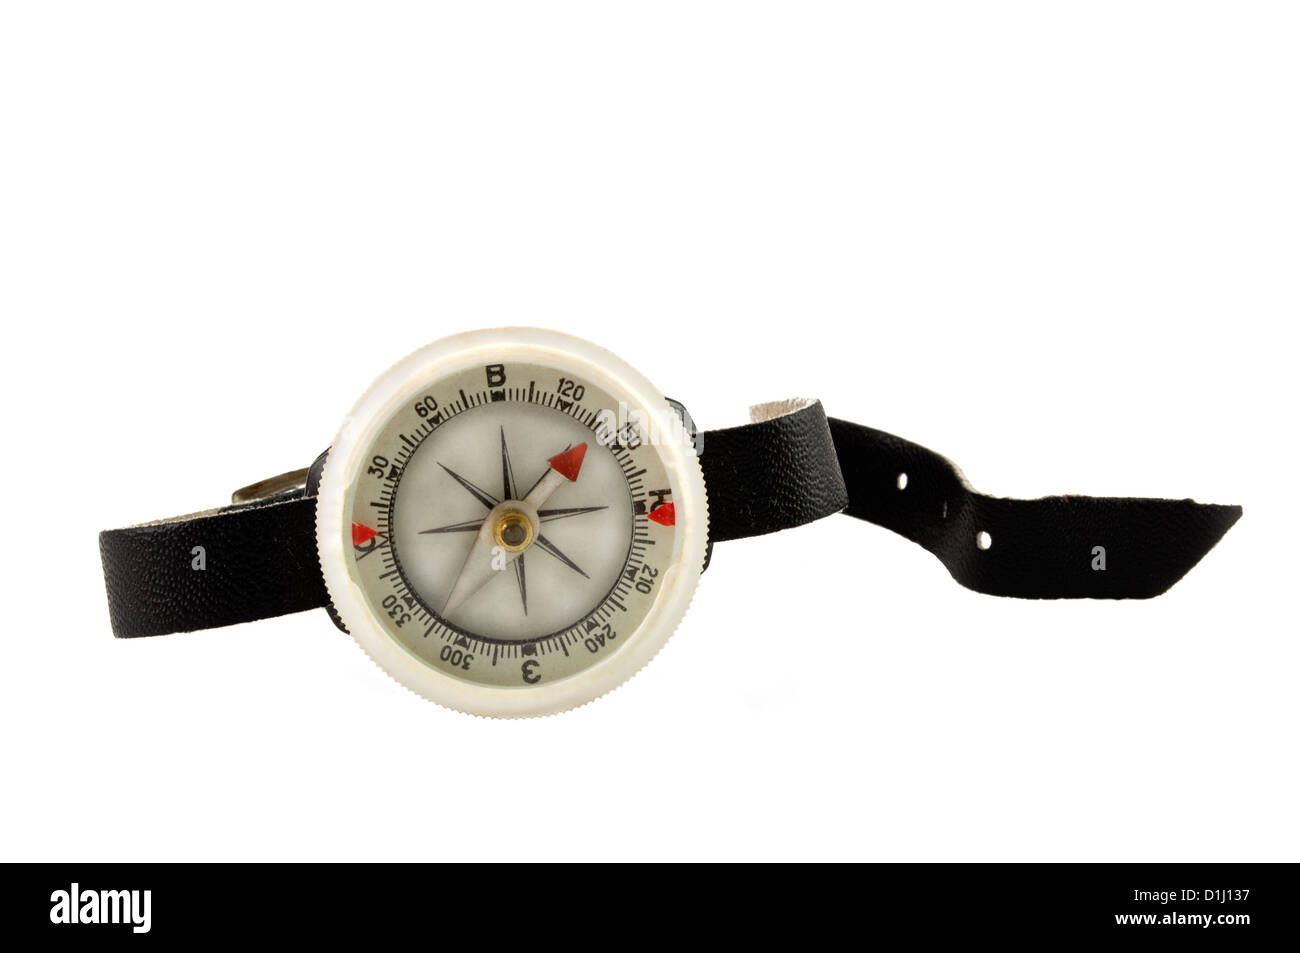 plastic compass with black band on white background - Stock Image